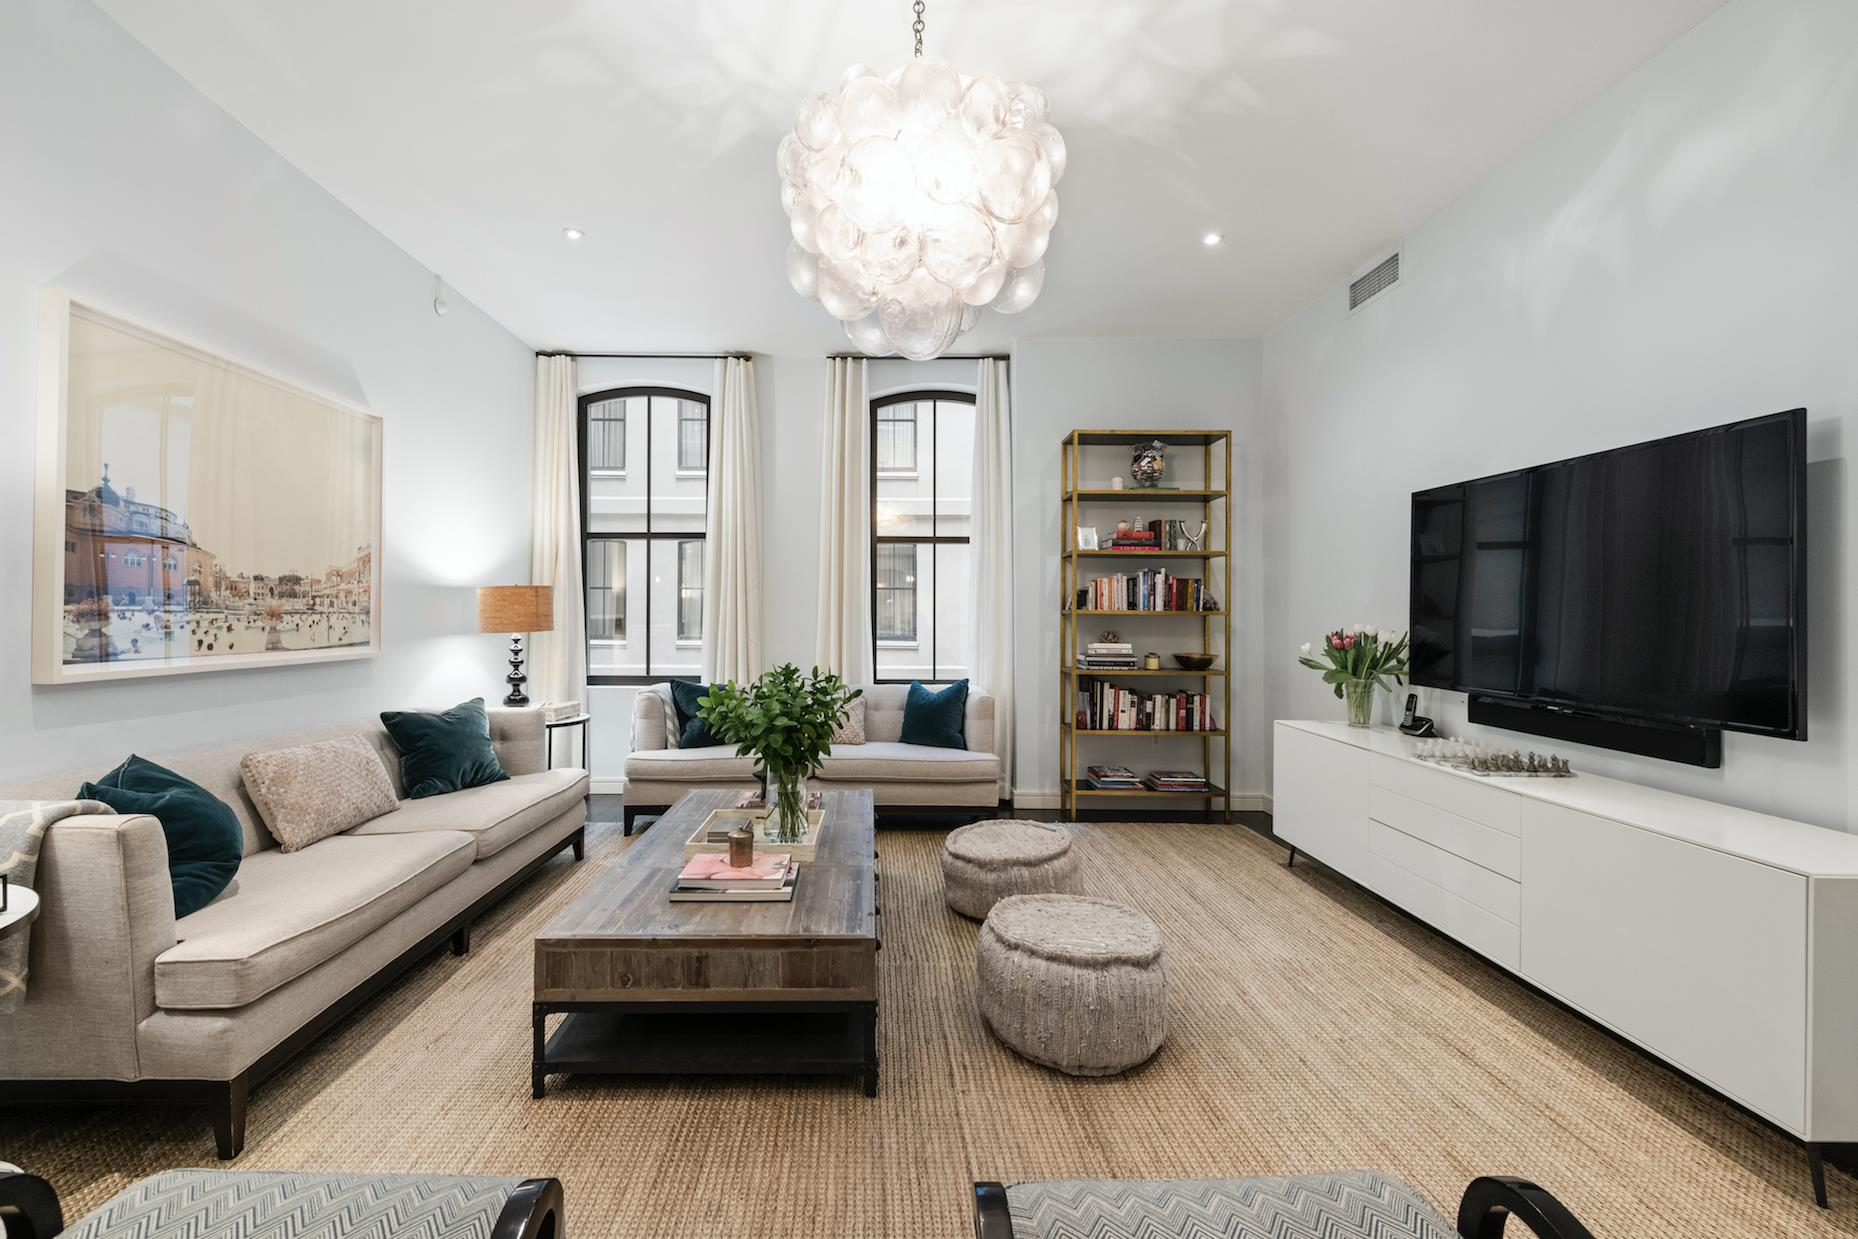 Don't miss this opportunity to live in one of Tribeca's most sought after pre-war conversions, 250 West Street! Move right in to this beautifully designed OVERSIZED 2 Bedroom 2.5 Bath plus large Den/Bedroom.  This gracious 1973 sq ft loft boasts 10 ft ceilings and 5-inch wide-plank oak flooring throughout. If cooking or eating is your thing, the well appointed open Chef's kitchen is set up for entertaining or just enjoying your loved ones. The kitchen is equipped with Poggenpohl cabinetry, an integrated Subzero refrigerator, wine fridge, and a Bosch stove, range and dishwasher. One highlight of this home includes something that cannot be designed or added to just any home.  A good nights sleep and a peaceful life requires QUIET.  3A will provide you with peace and quiet all day and all night. Retire to your serene Master suite which offers a well thought out walk-in closet and a luxurious en-suite Bath with a double sink, deep soaking tub and separate stall shower. The generously sized second Bedroom offers an en-suite Bath and an abundance of closet space. The third room is spacious enough for a Bedroom, Playroom or Home Office. Central air conditioning, a Bosch washer/dryer and a half bath for guests, complete this home.  In addition to the abundance of closets there is a 28 SF private storage bin included with the home. Enjoy being pampered and well taken care of in this full-service building with a wonderful live-in resident manager, full-time doorman and concierge.  Best amenity rich building in Tribeca, includes a walk-in refrigeration room, comfortable library/ lounge,  lap pool including men and women's locker rooms with saunas, state-of-the-art fitness center, children's playroom, 5,000 square foot roof terrace with stunning city views, sundeck, grill and dining area. Outside of your front door you will have access to the best restaurants, shopping, running, biking, tennis, basketball, skate boarding park and Hudson River Park's Piers 25 and 26 which offer 